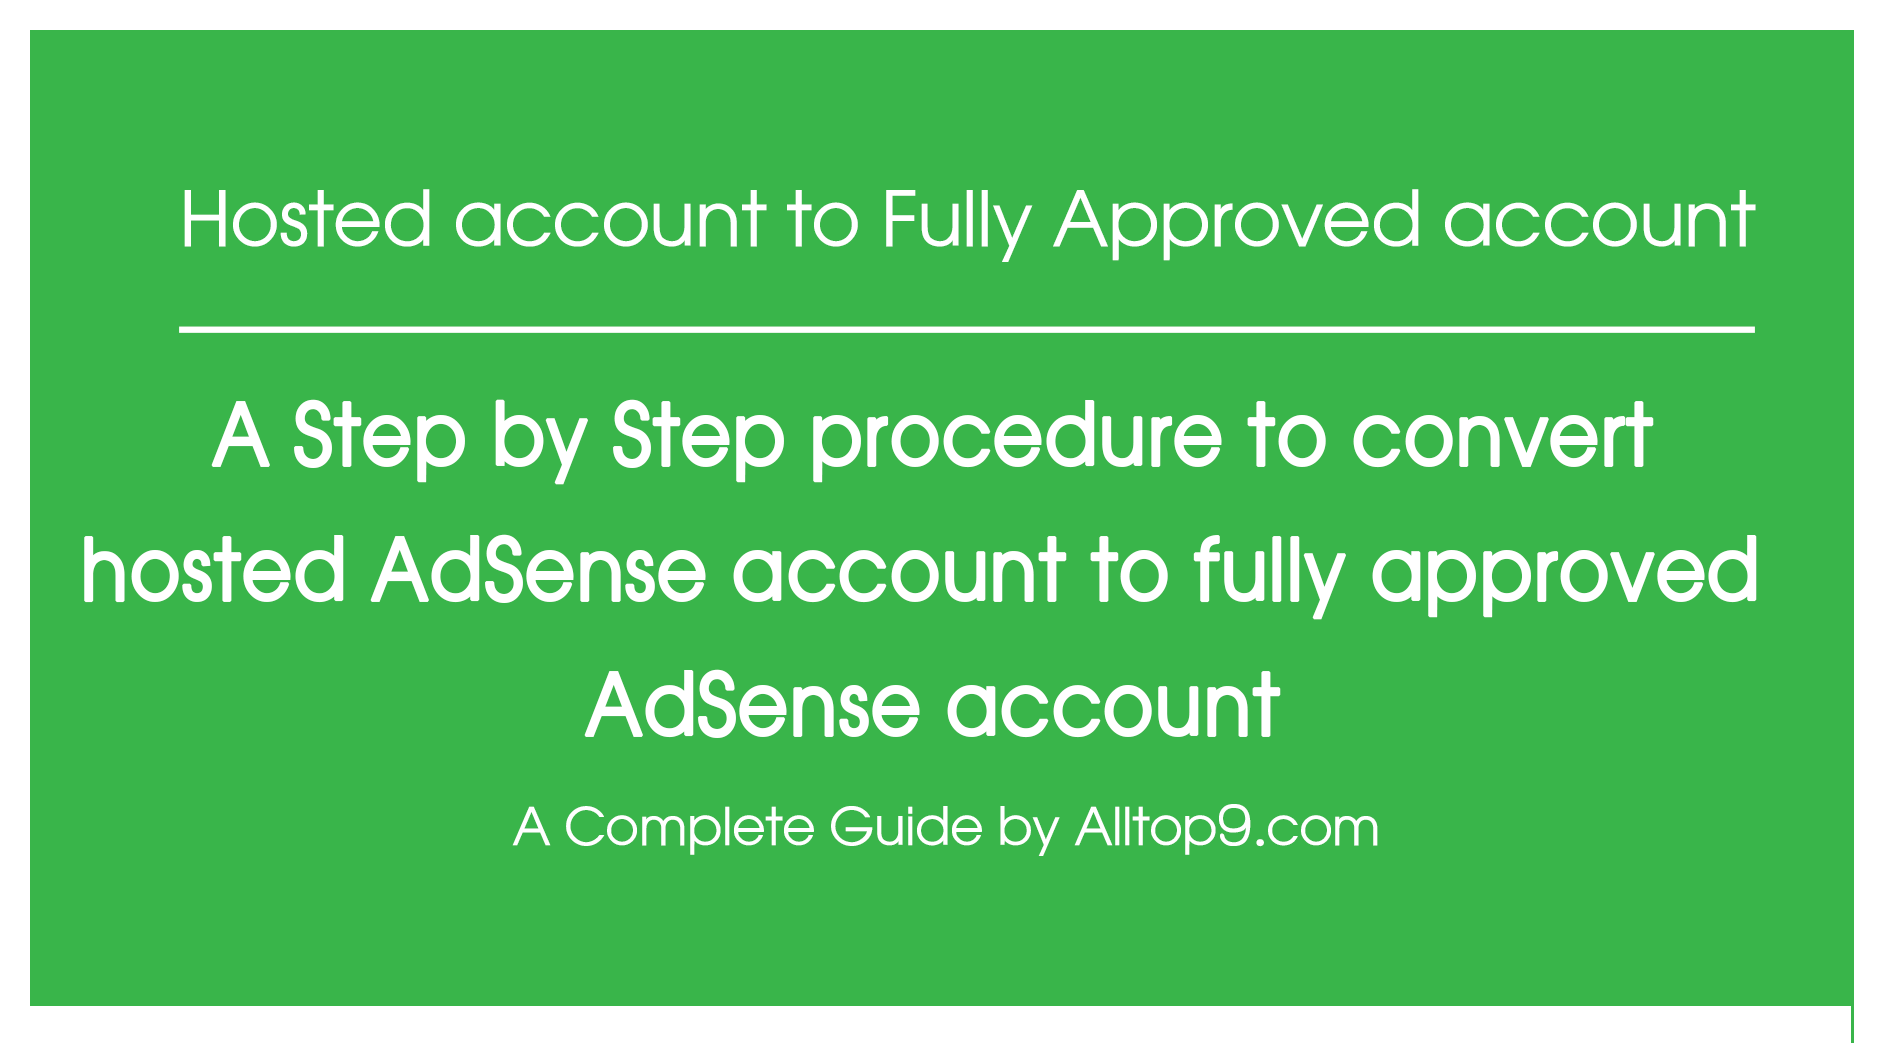 step-by-step-procedure-to-convert-hosted-adsense-account-to-fully-approved-adsense-account